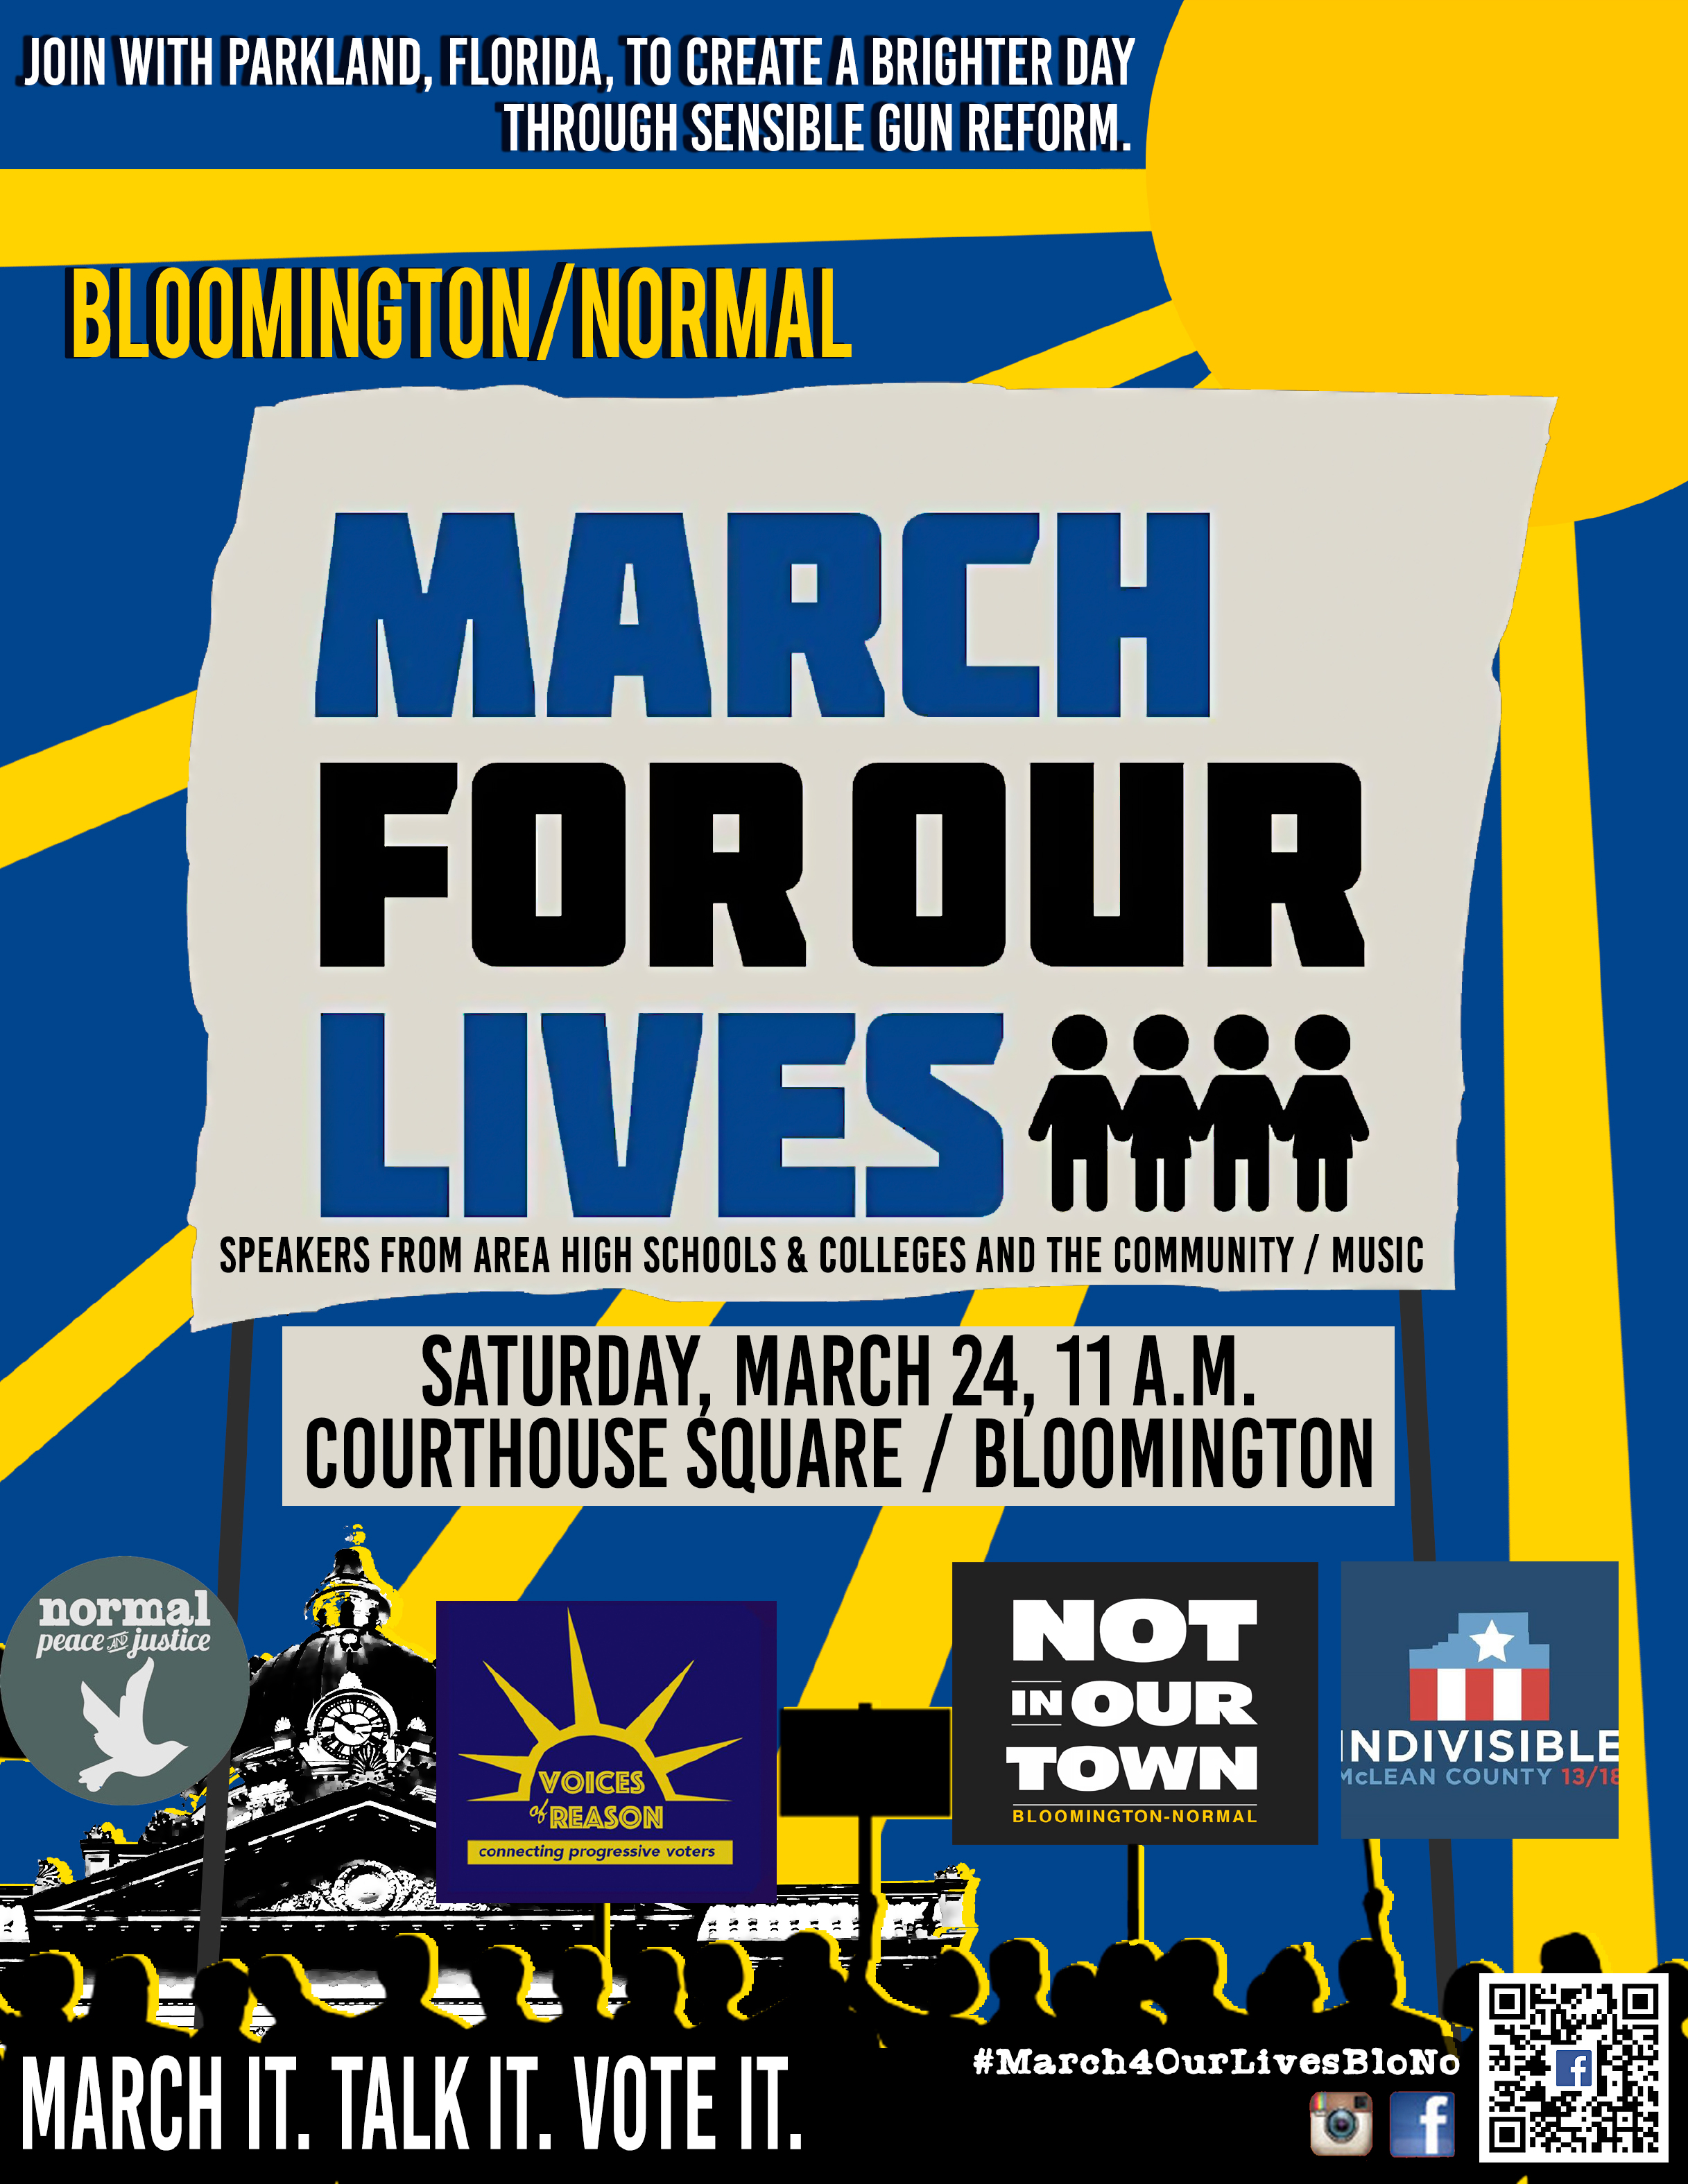 March4OurLivesblono poster.jpg